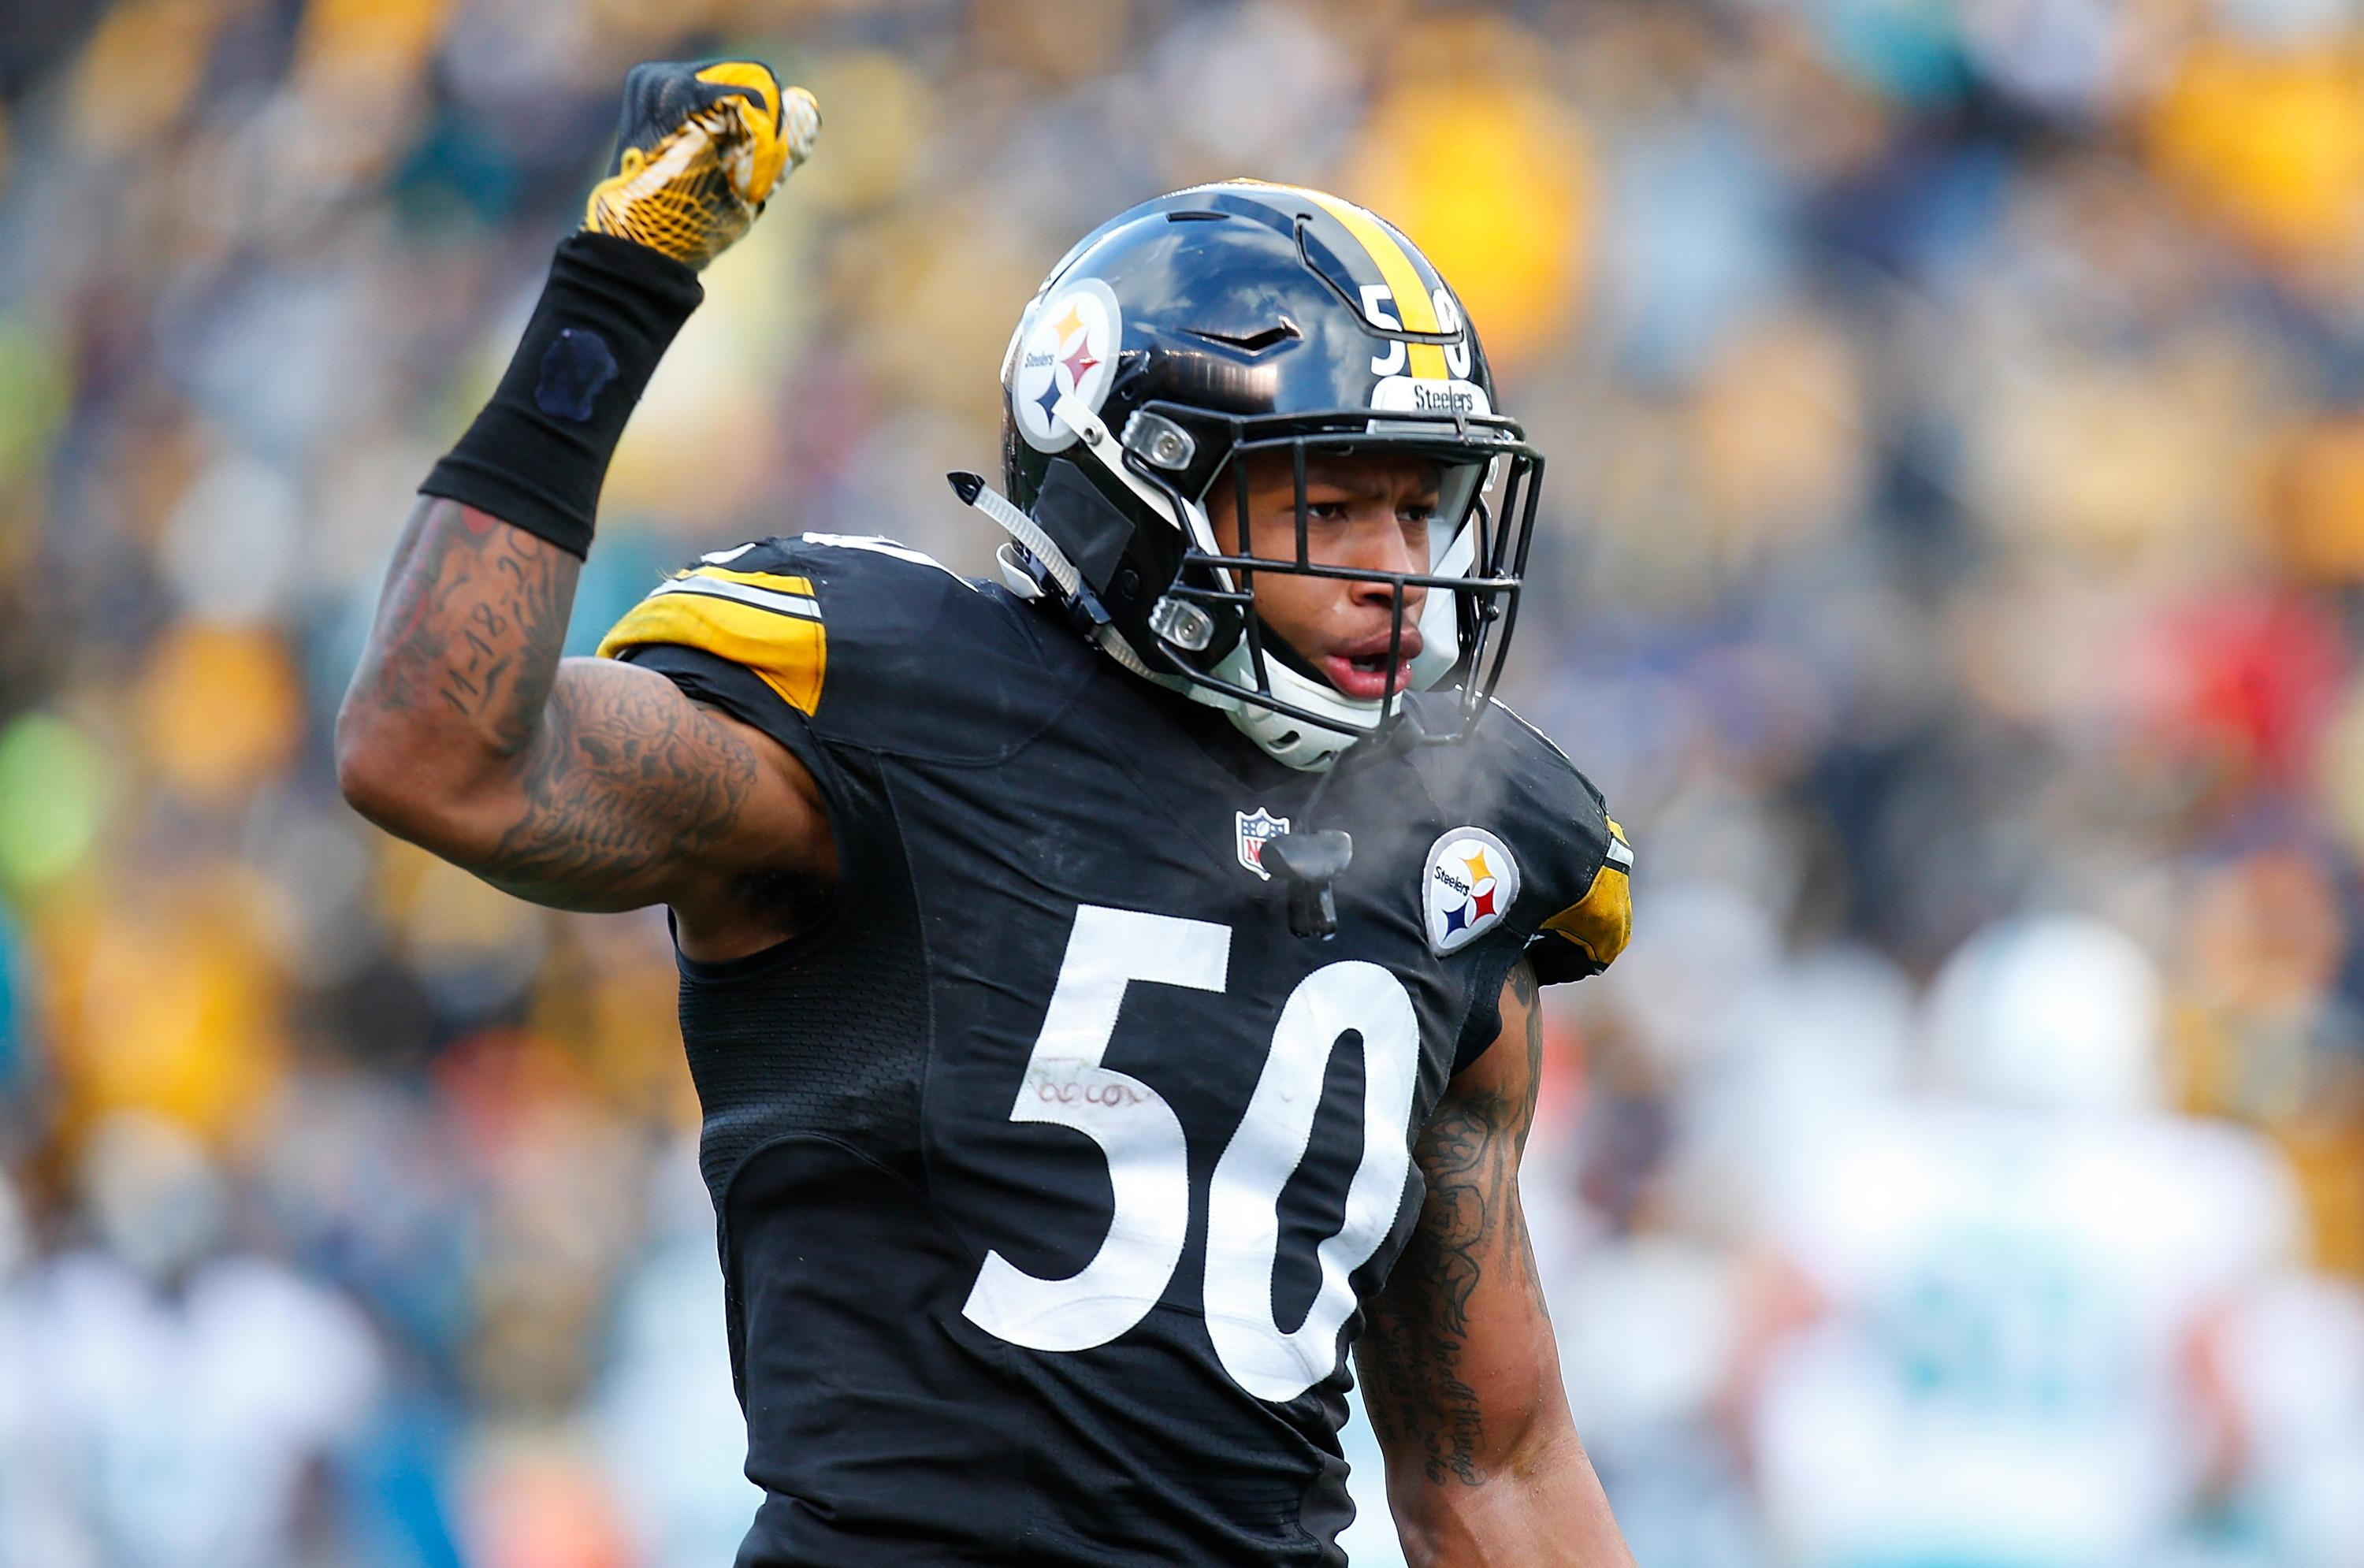 Ryan Shazier Undergoes Spinal Stabilization Surgery